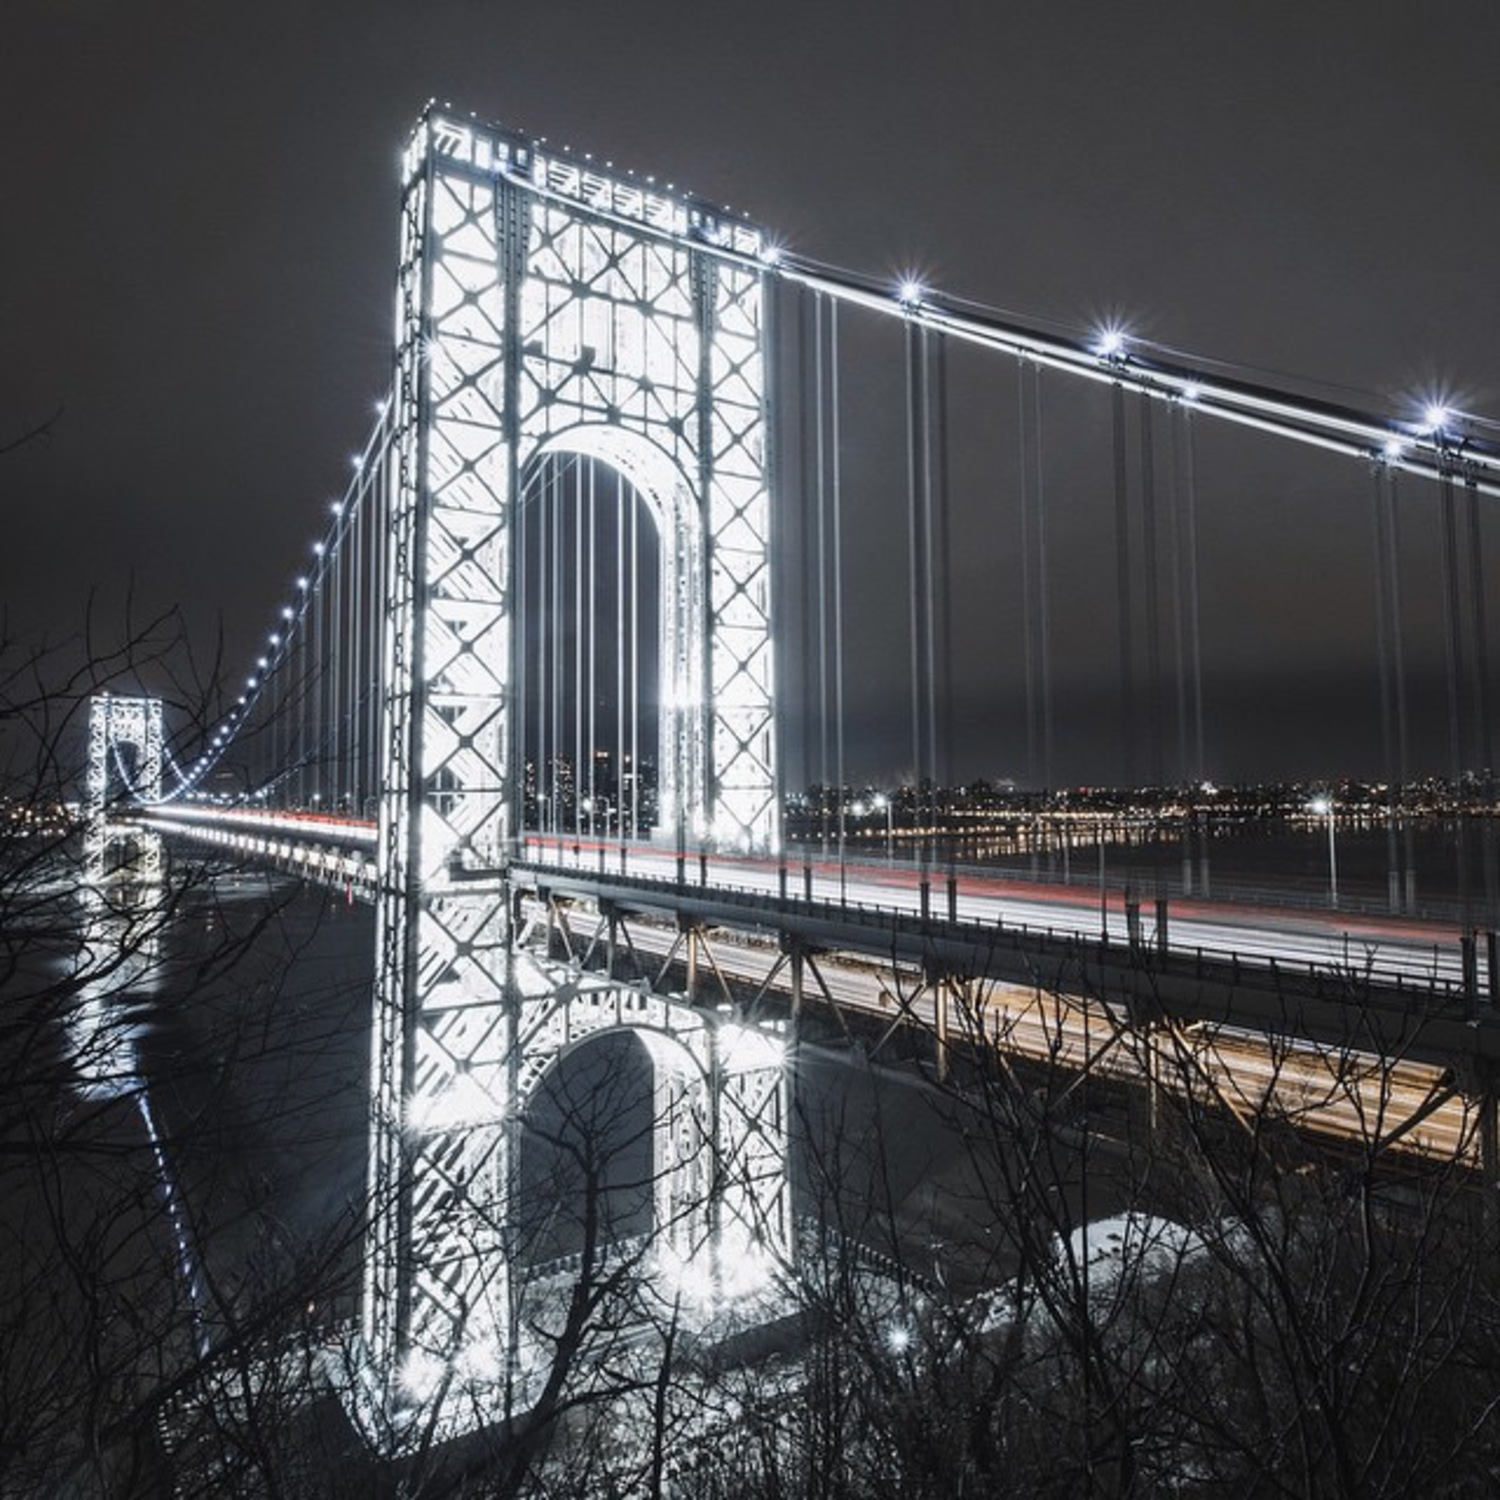 George Washington Bridge Illuminated at Night